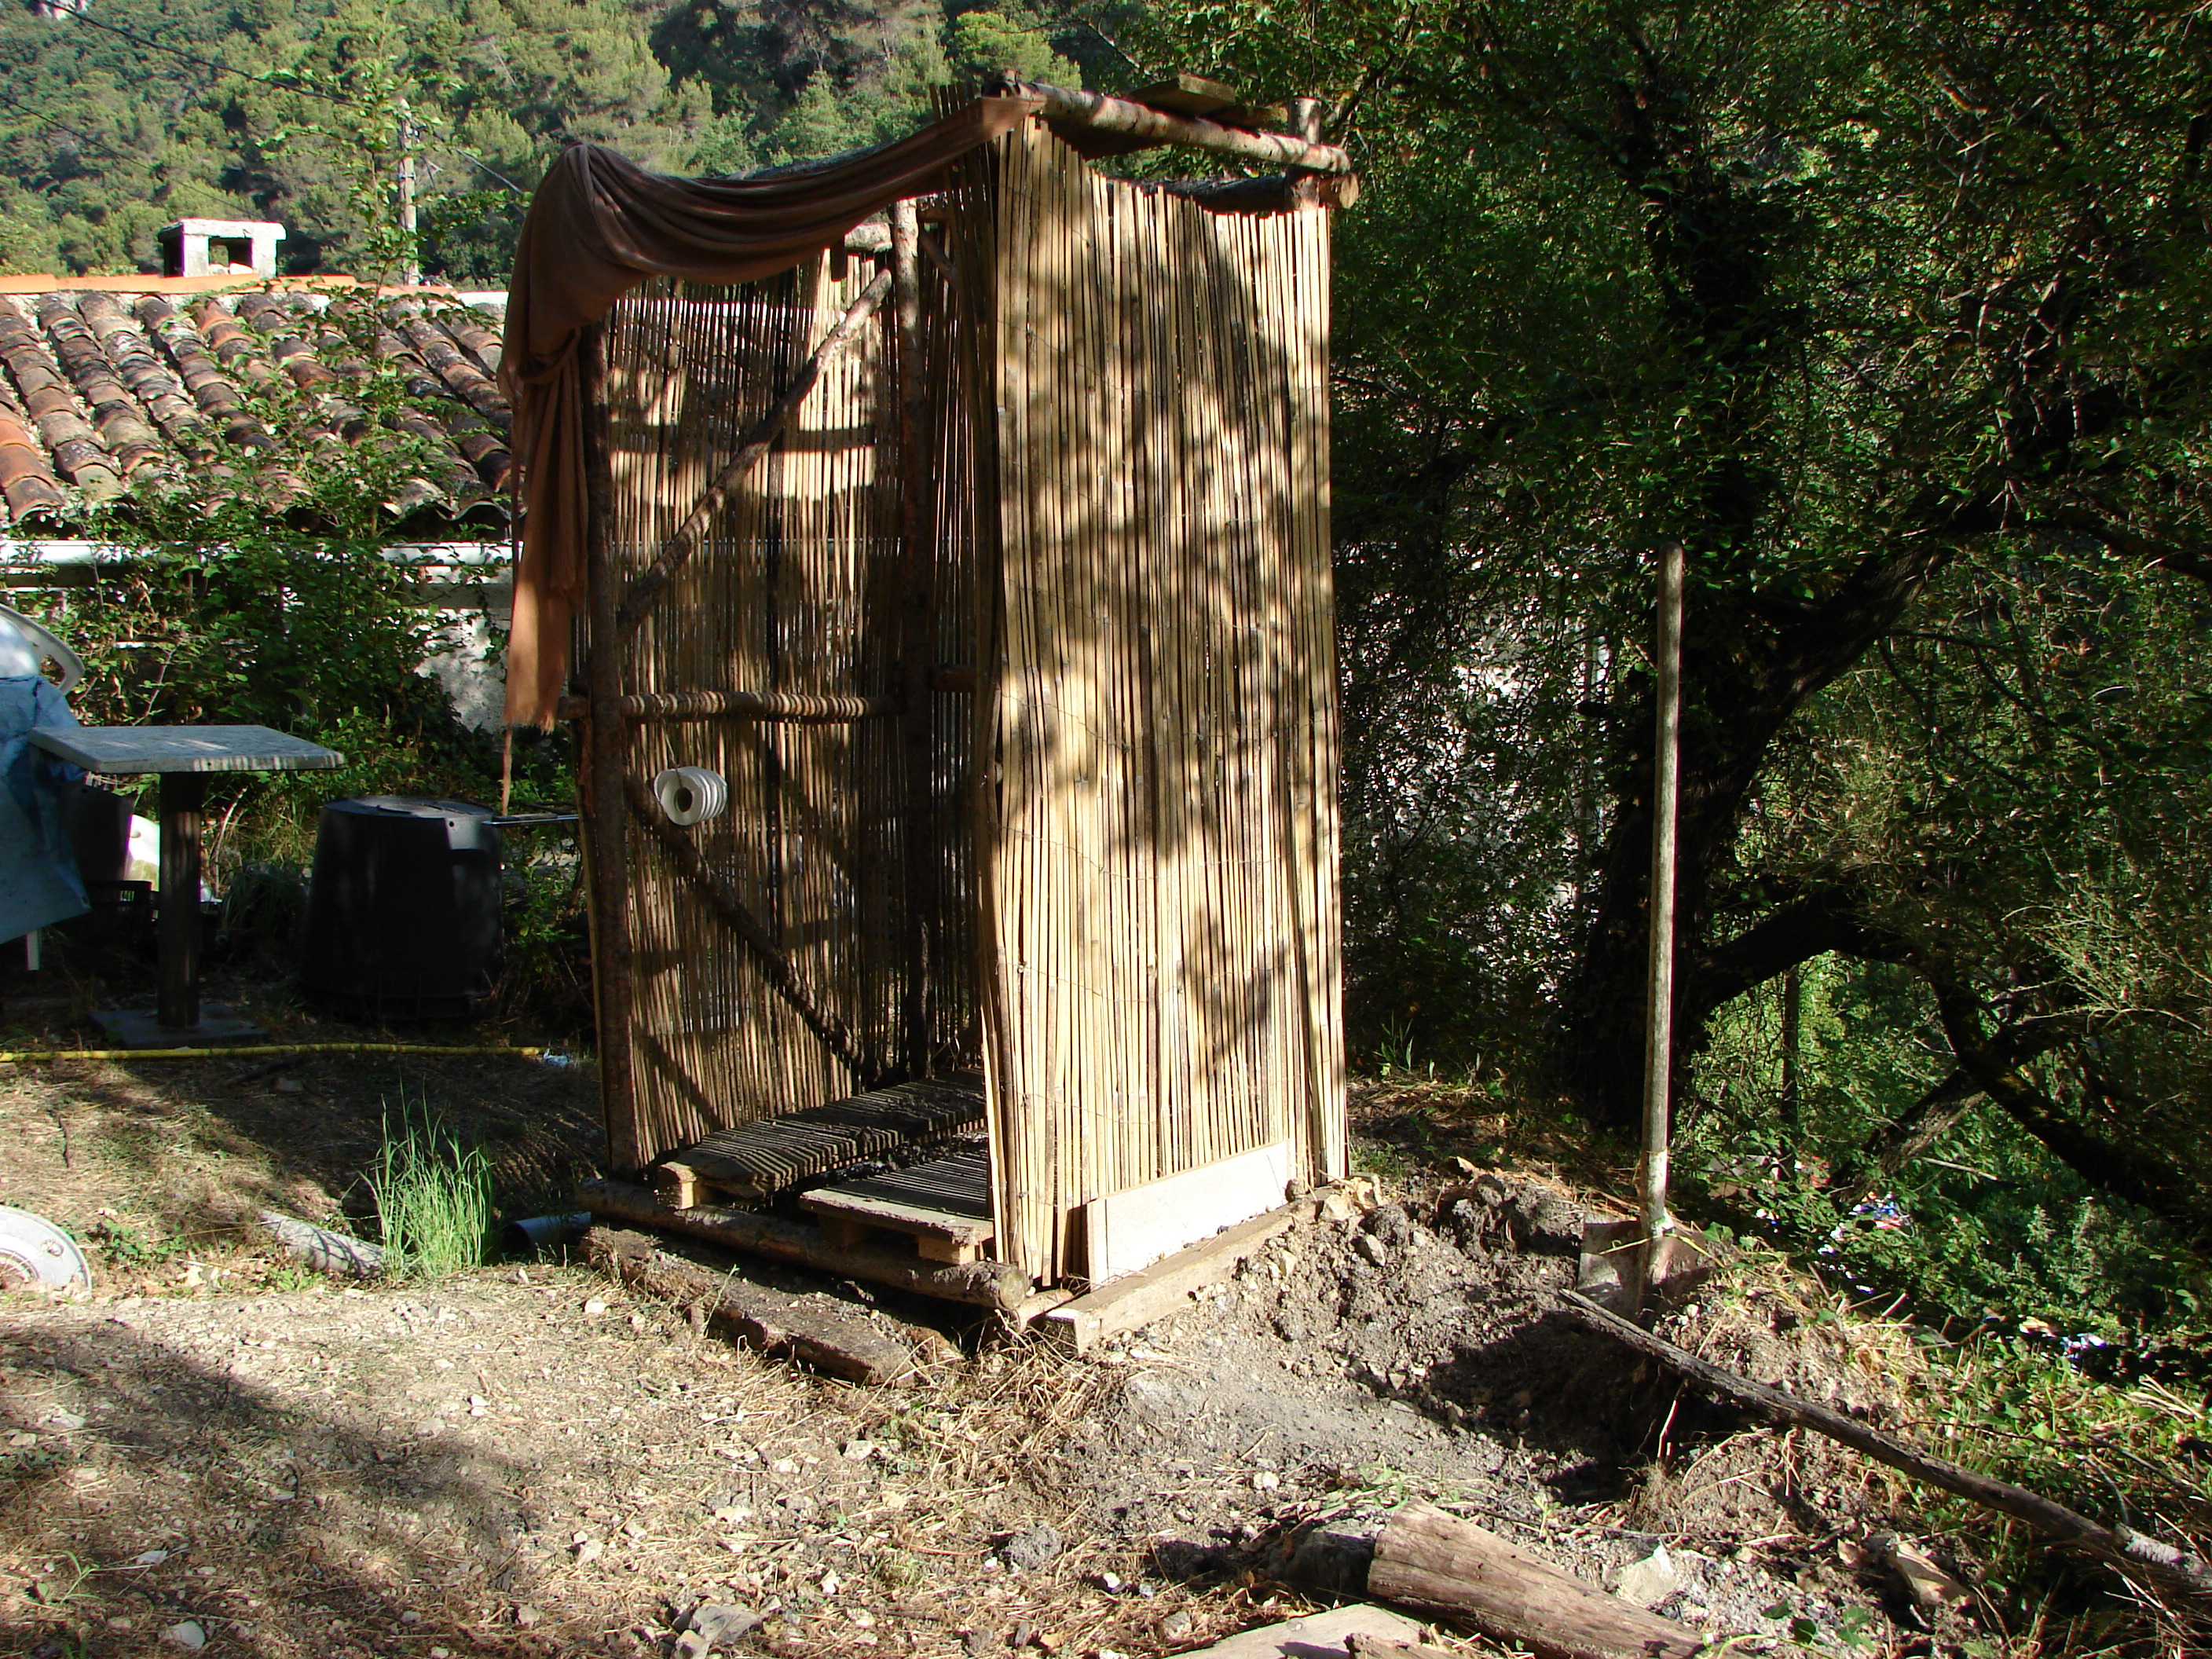 File:Composting toilet Toilettes sèches en plein air WC ...